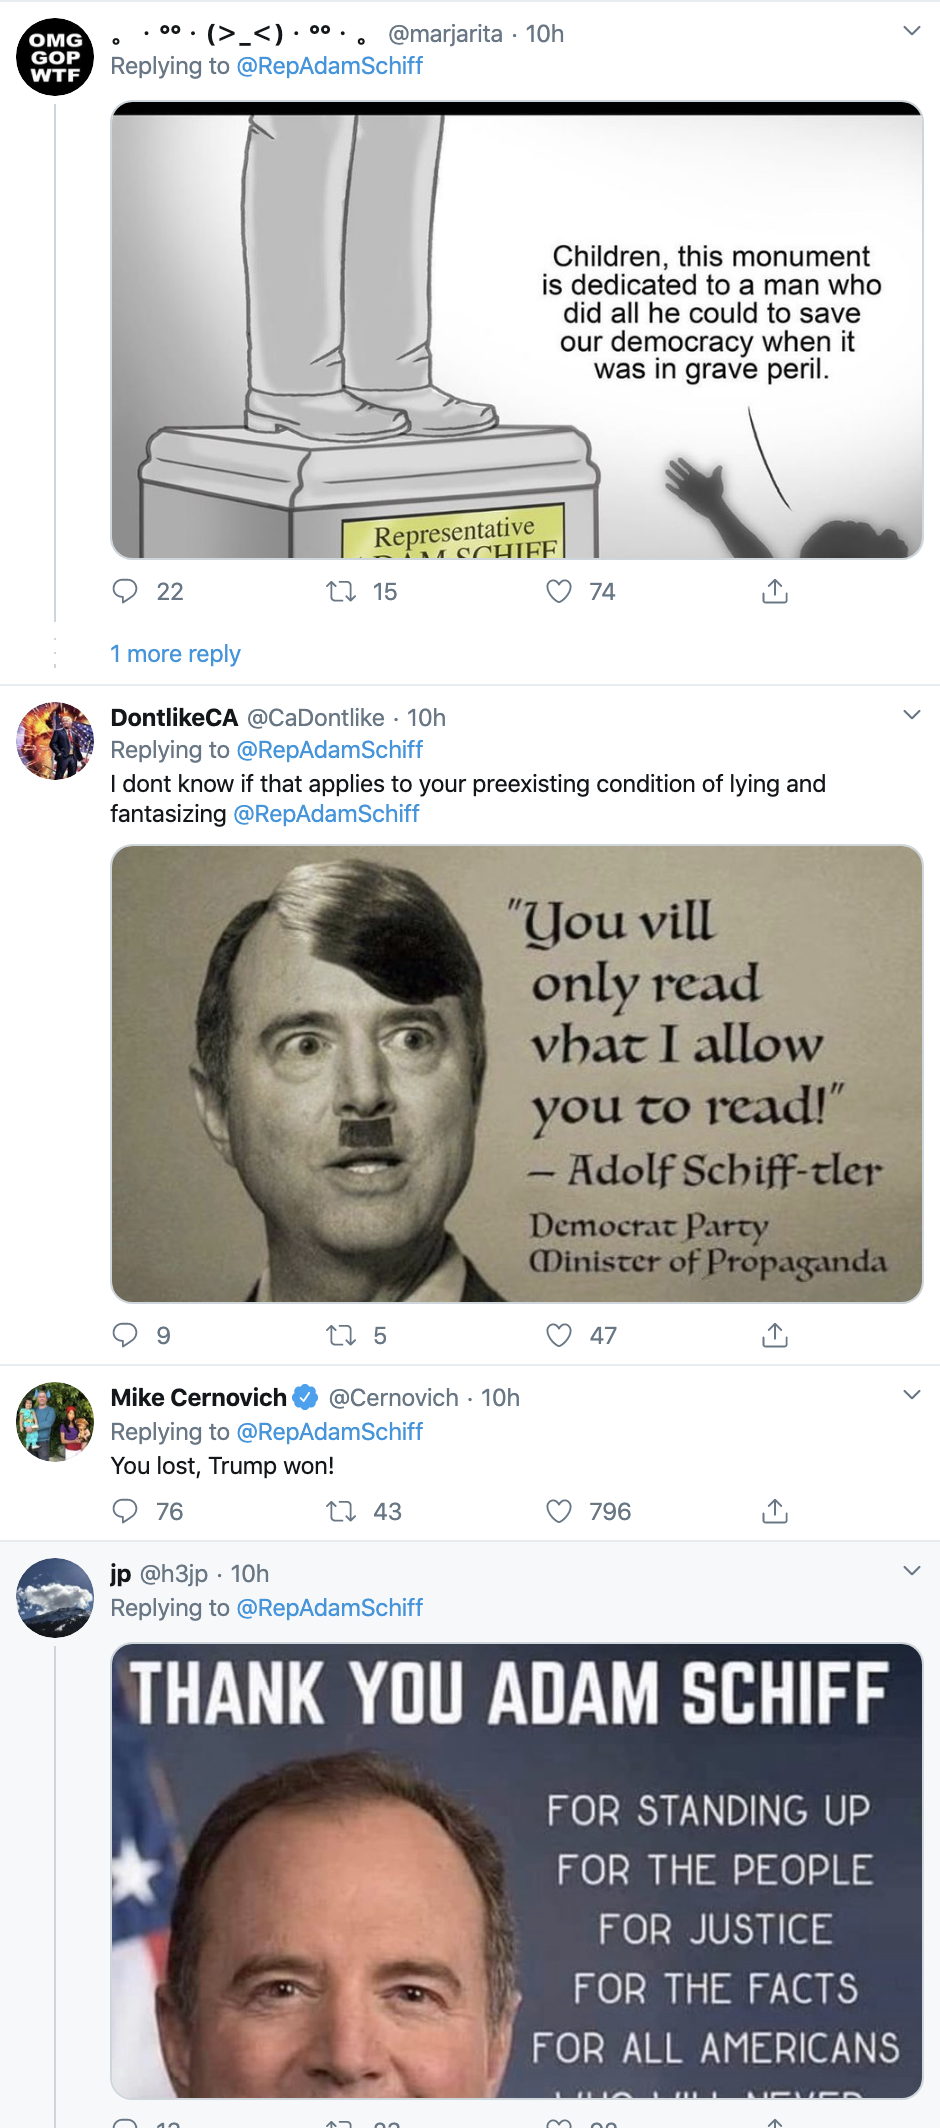 Screen-Shot-2020-02-05-at-9.01.12-AM Schiff Upstages Trump During SOTU With Snarky Twitter Trolling Featured Impeachment Politics Top Stories Twitter